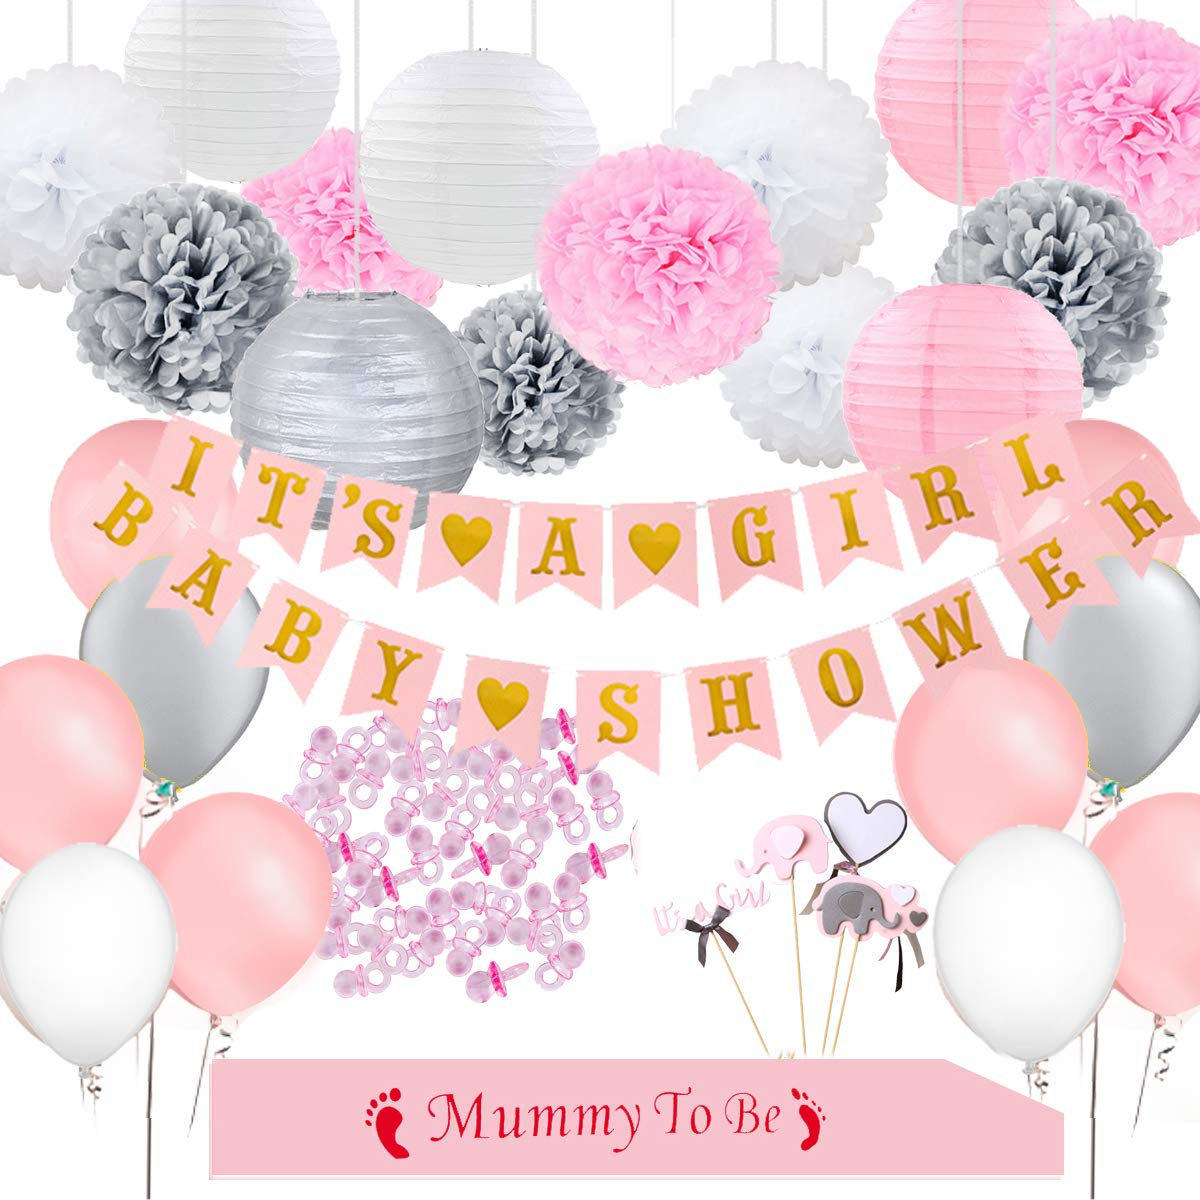 Baby Shower Decorations for Girl, It's A Girl Banner, Mommy to Be Sash, Elephant Cake Topper, Colorful Pompoms, Paper Lanterns, Balloons, Pink Grey White Party Supplies Nursery Room Decor